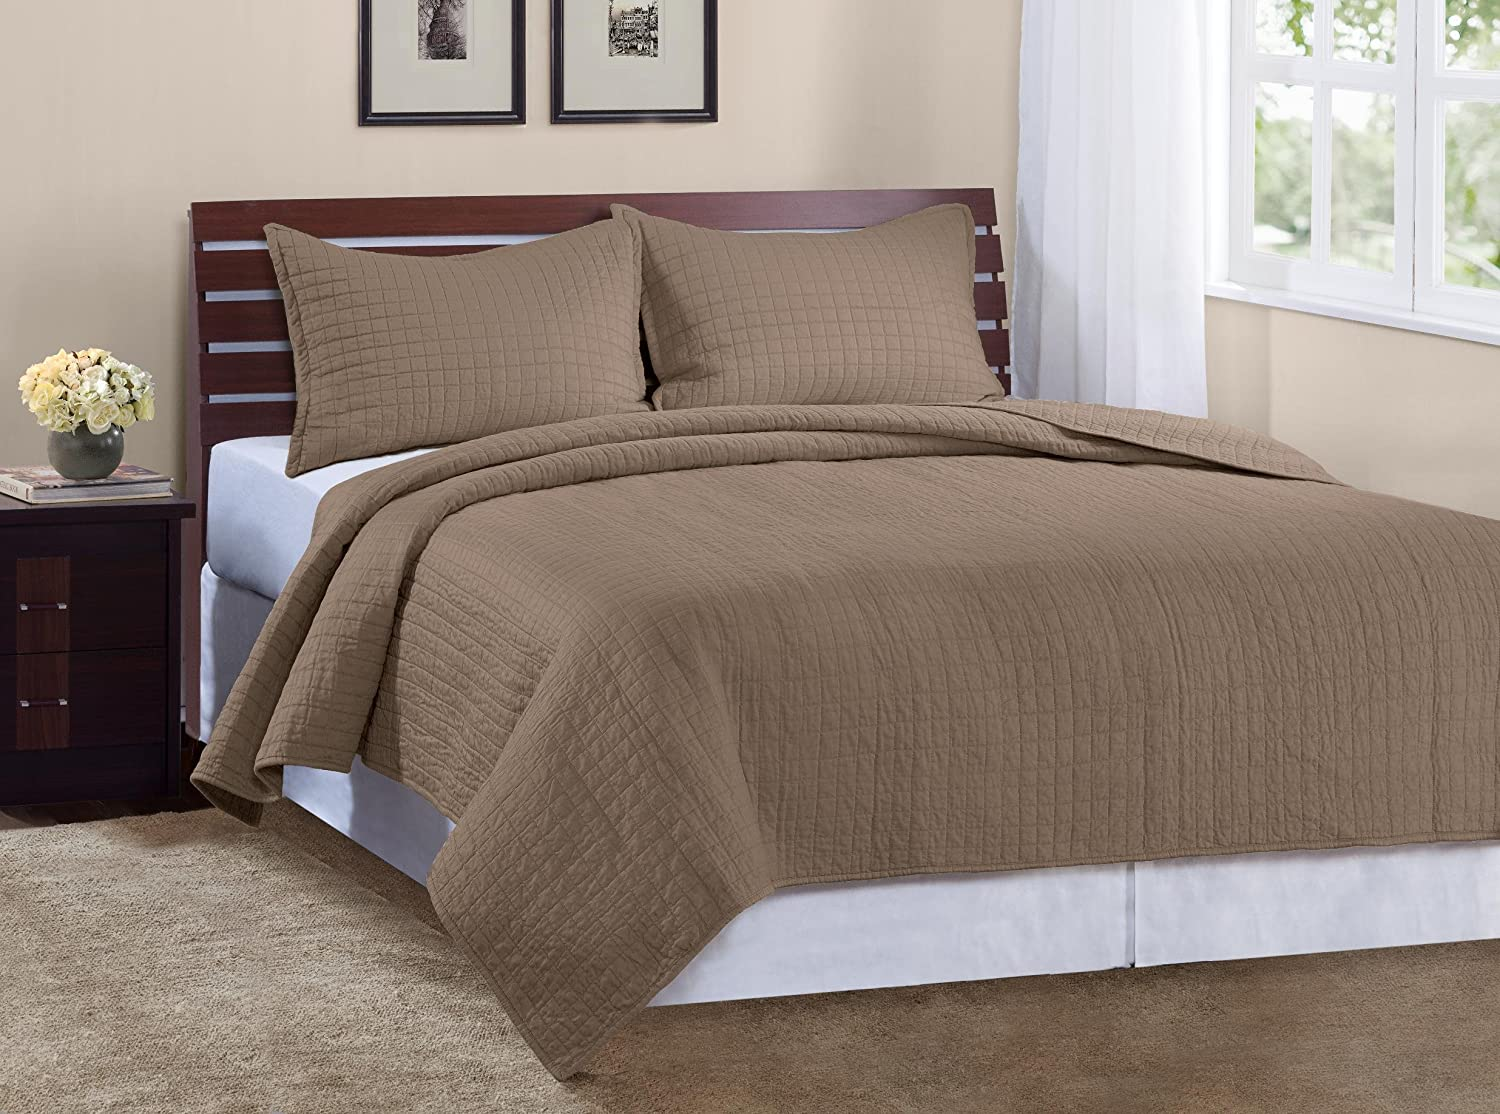 Cotton Quilt Bedspread Set, Latte